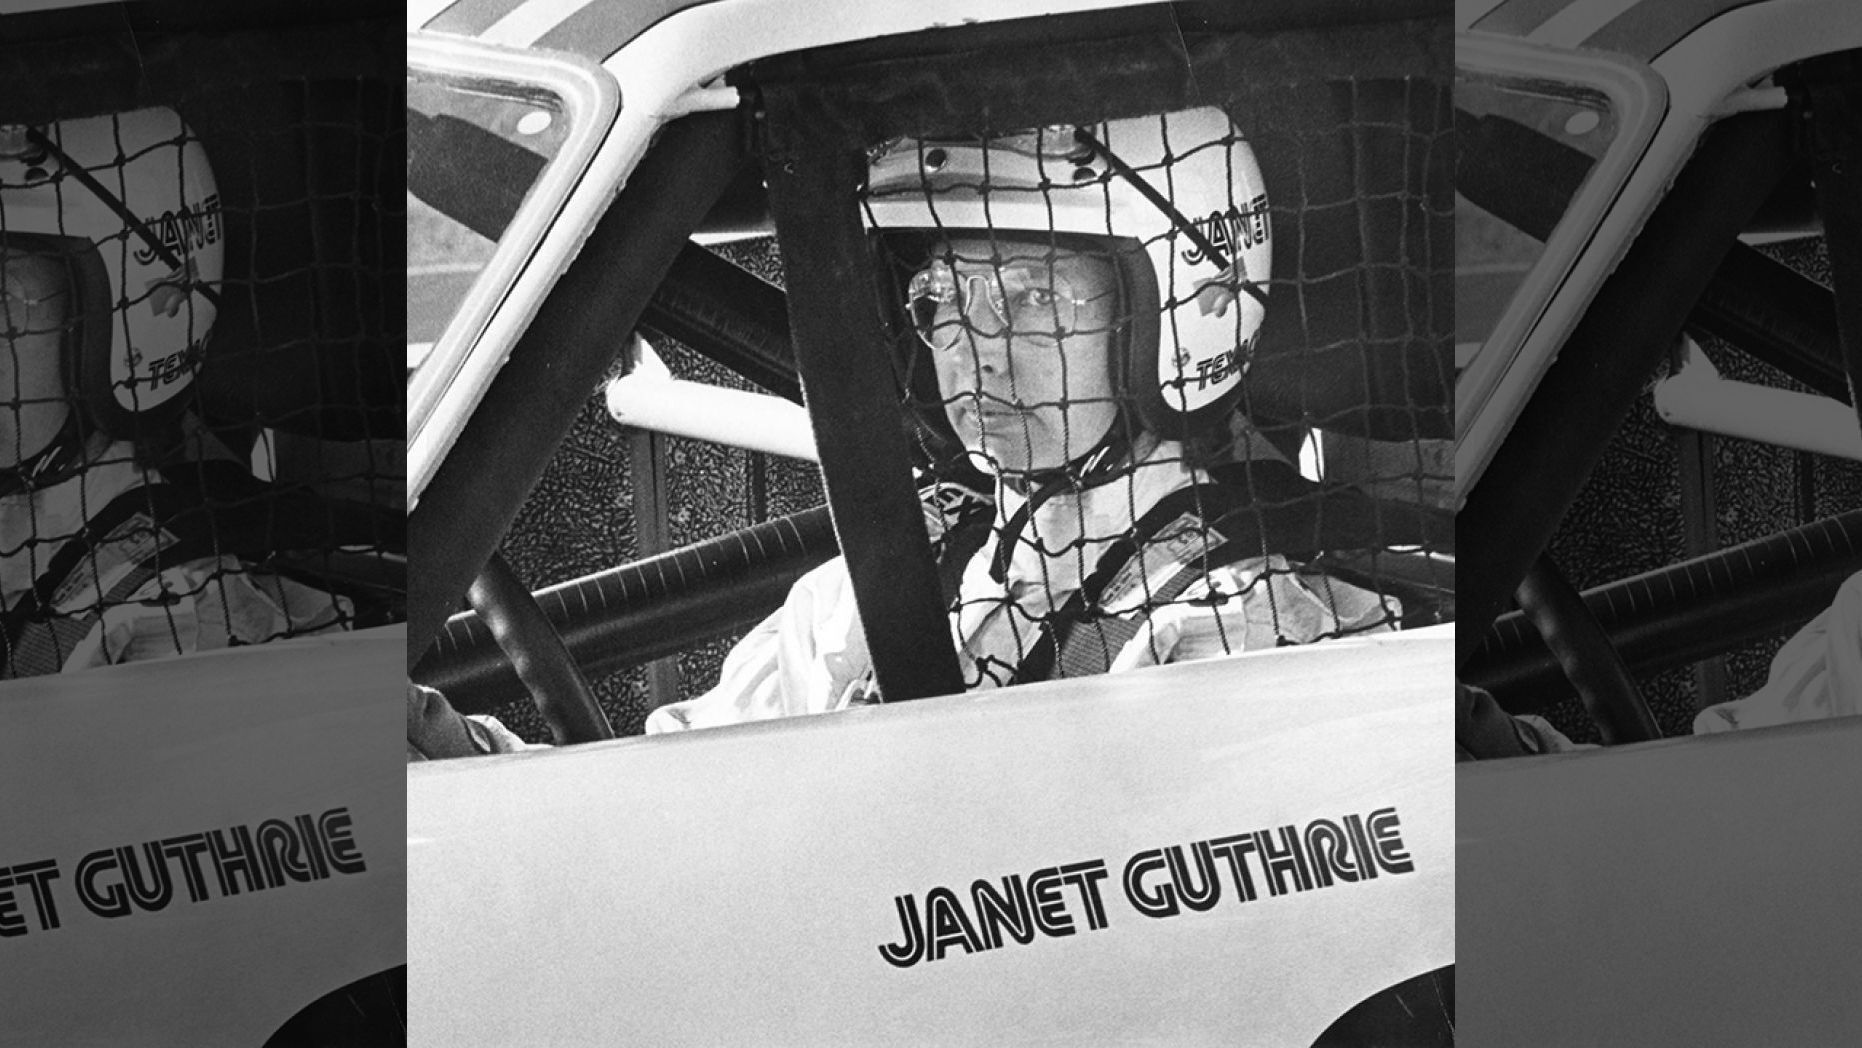 American racing legend Janet Guthrie enters the Automotive Hall of Fame